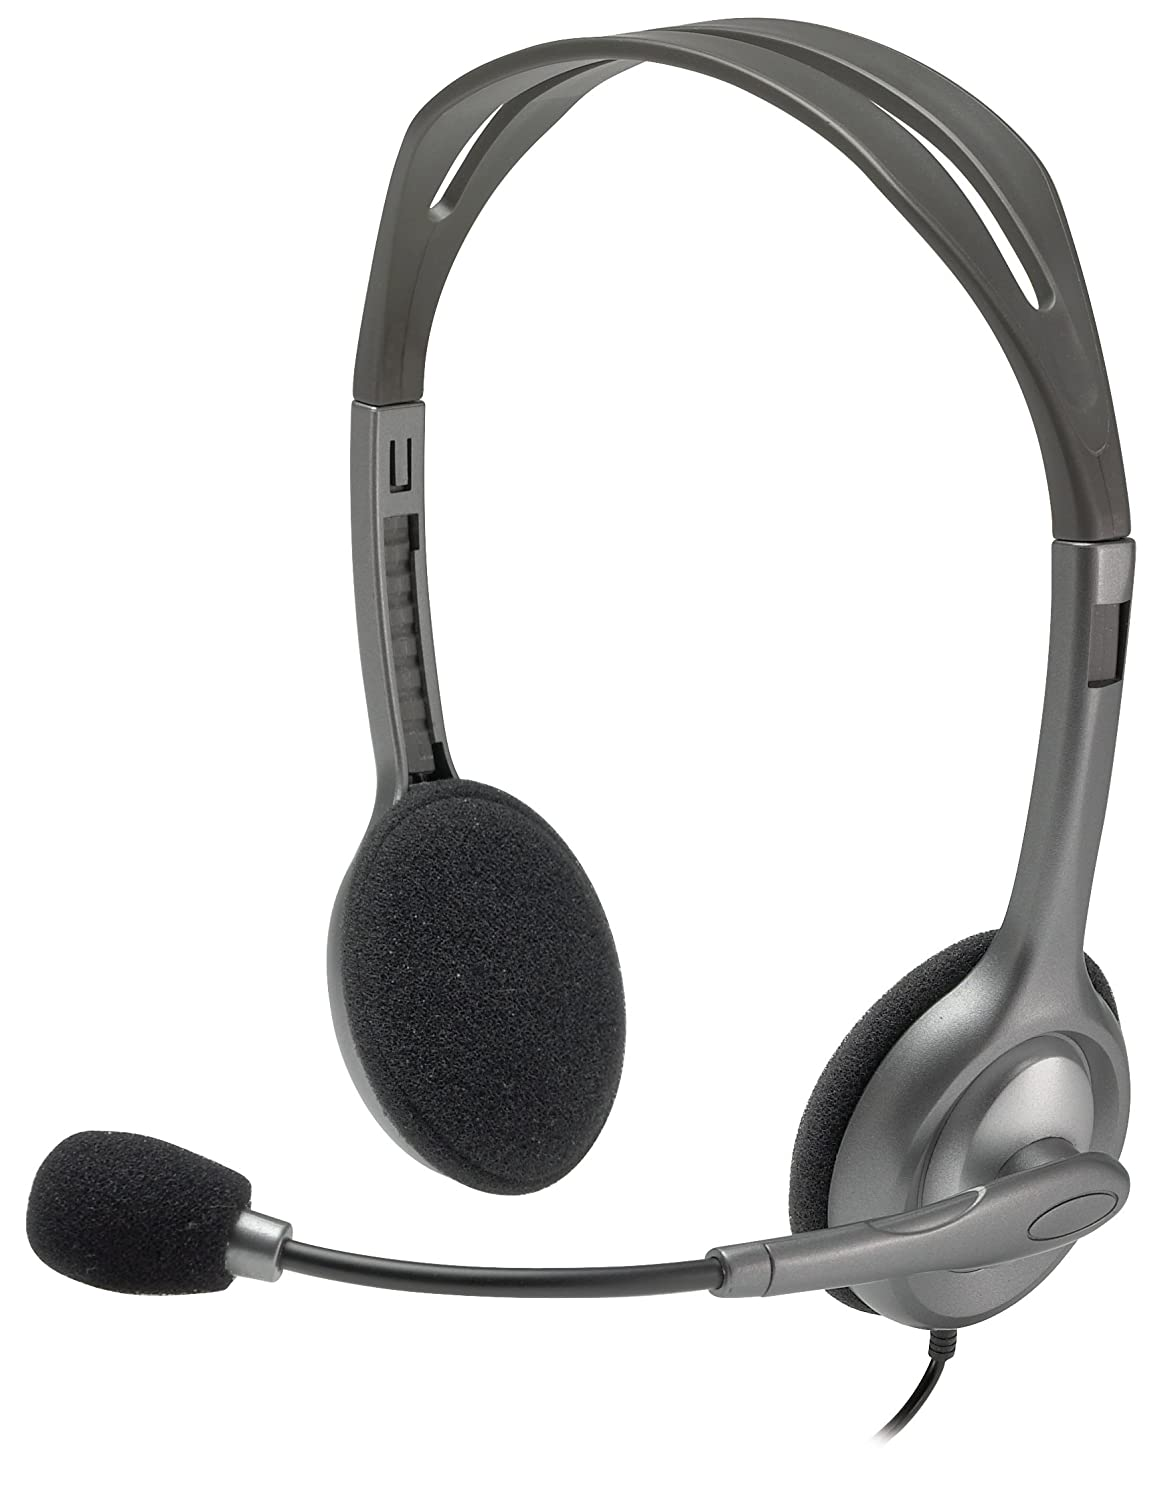 Logitech H340 Wired USB Headset, Black (981-000507) MP3 & Media Player Accessories